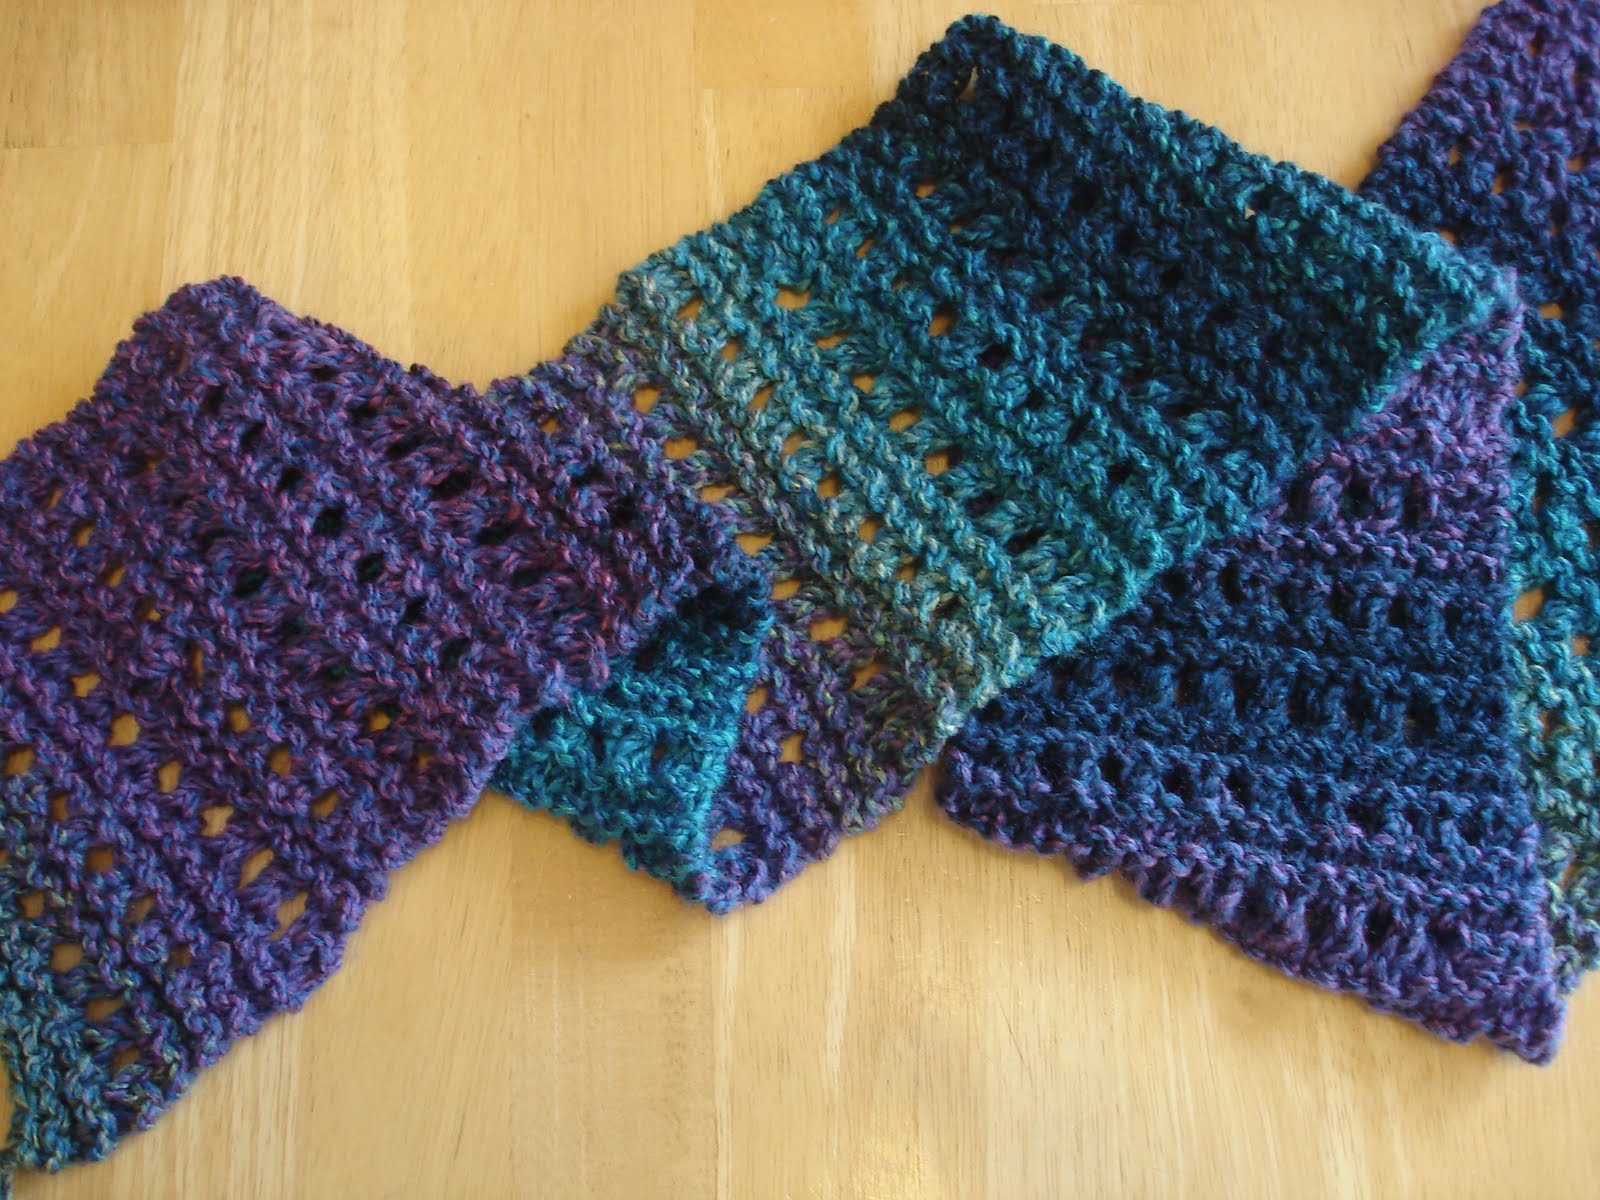 Knitted Patterns : Fiber Flux: Free Knitting Patterns